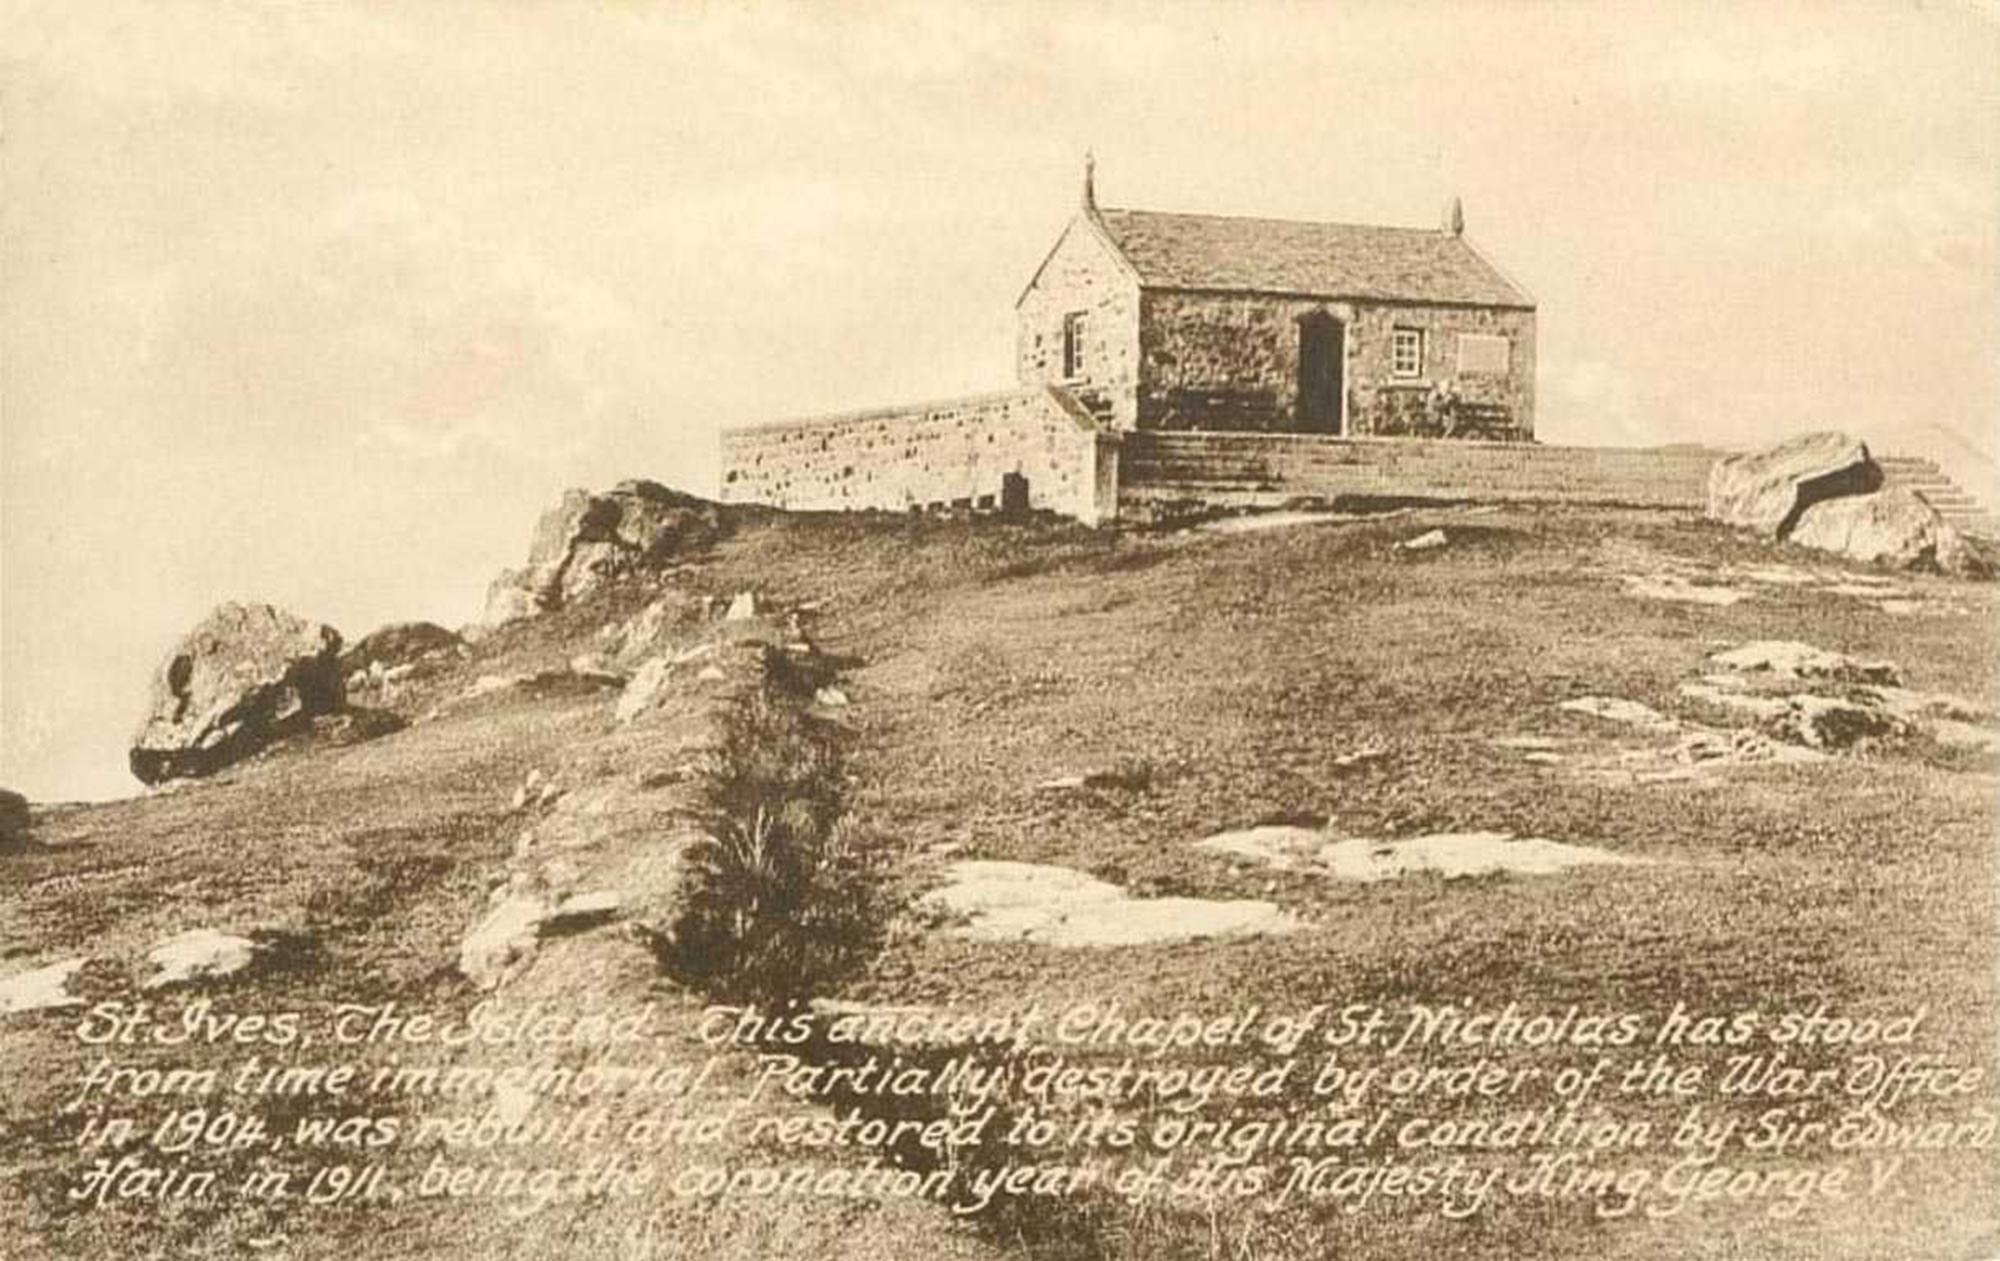 doherty-porcelain-Cornwall-st-ives-old-photo-of-the-island-chapel-of-st-nicholas.jpg